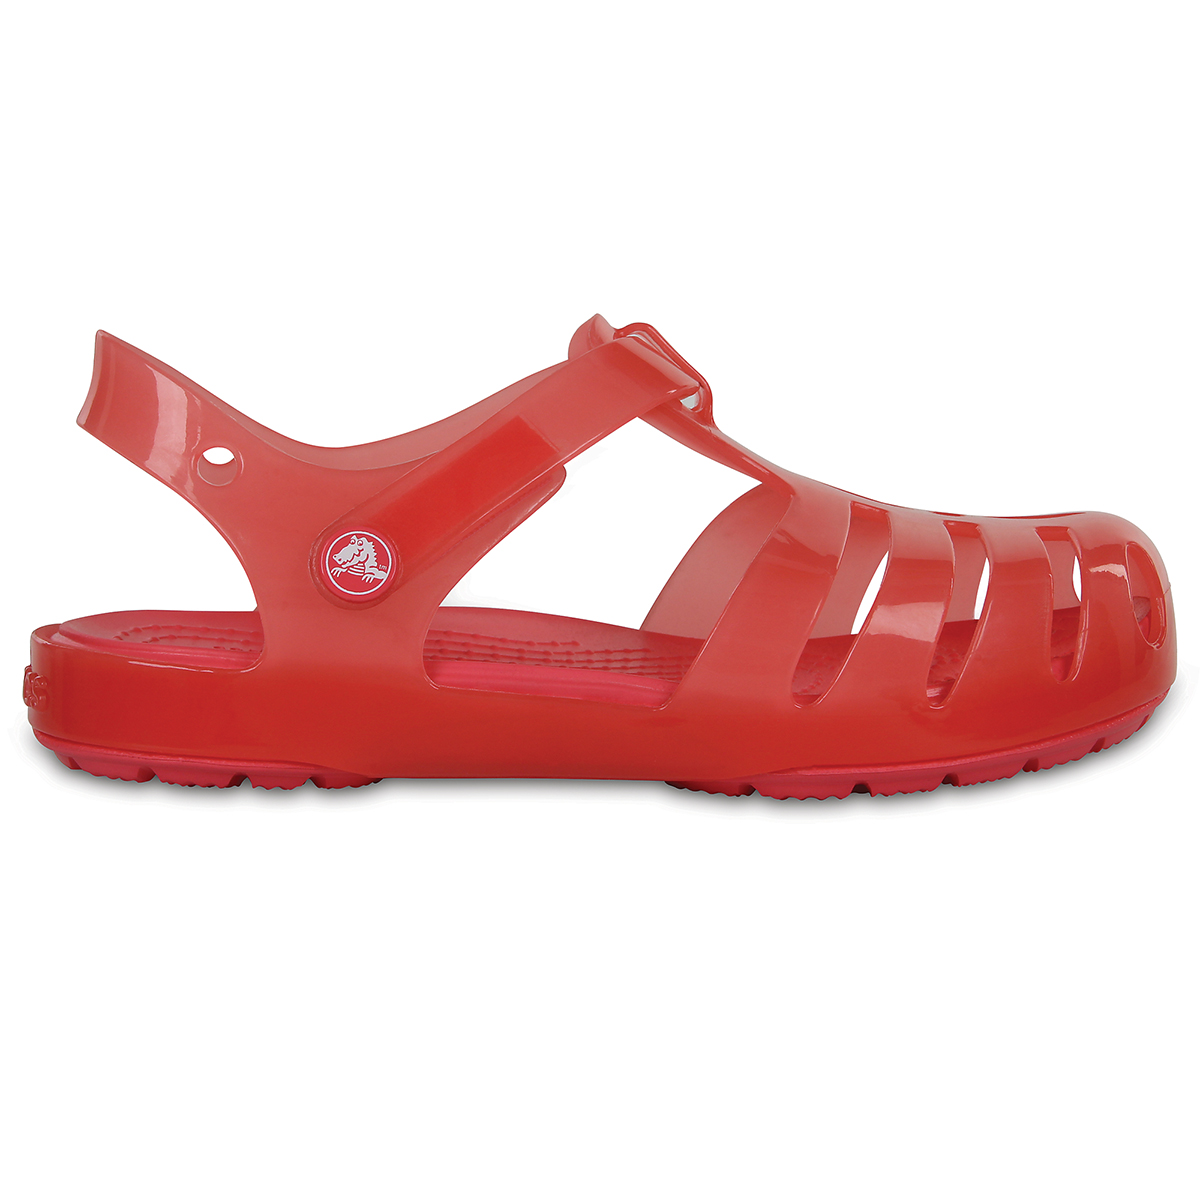 Crocs Isabella Sandal PS - Mercan